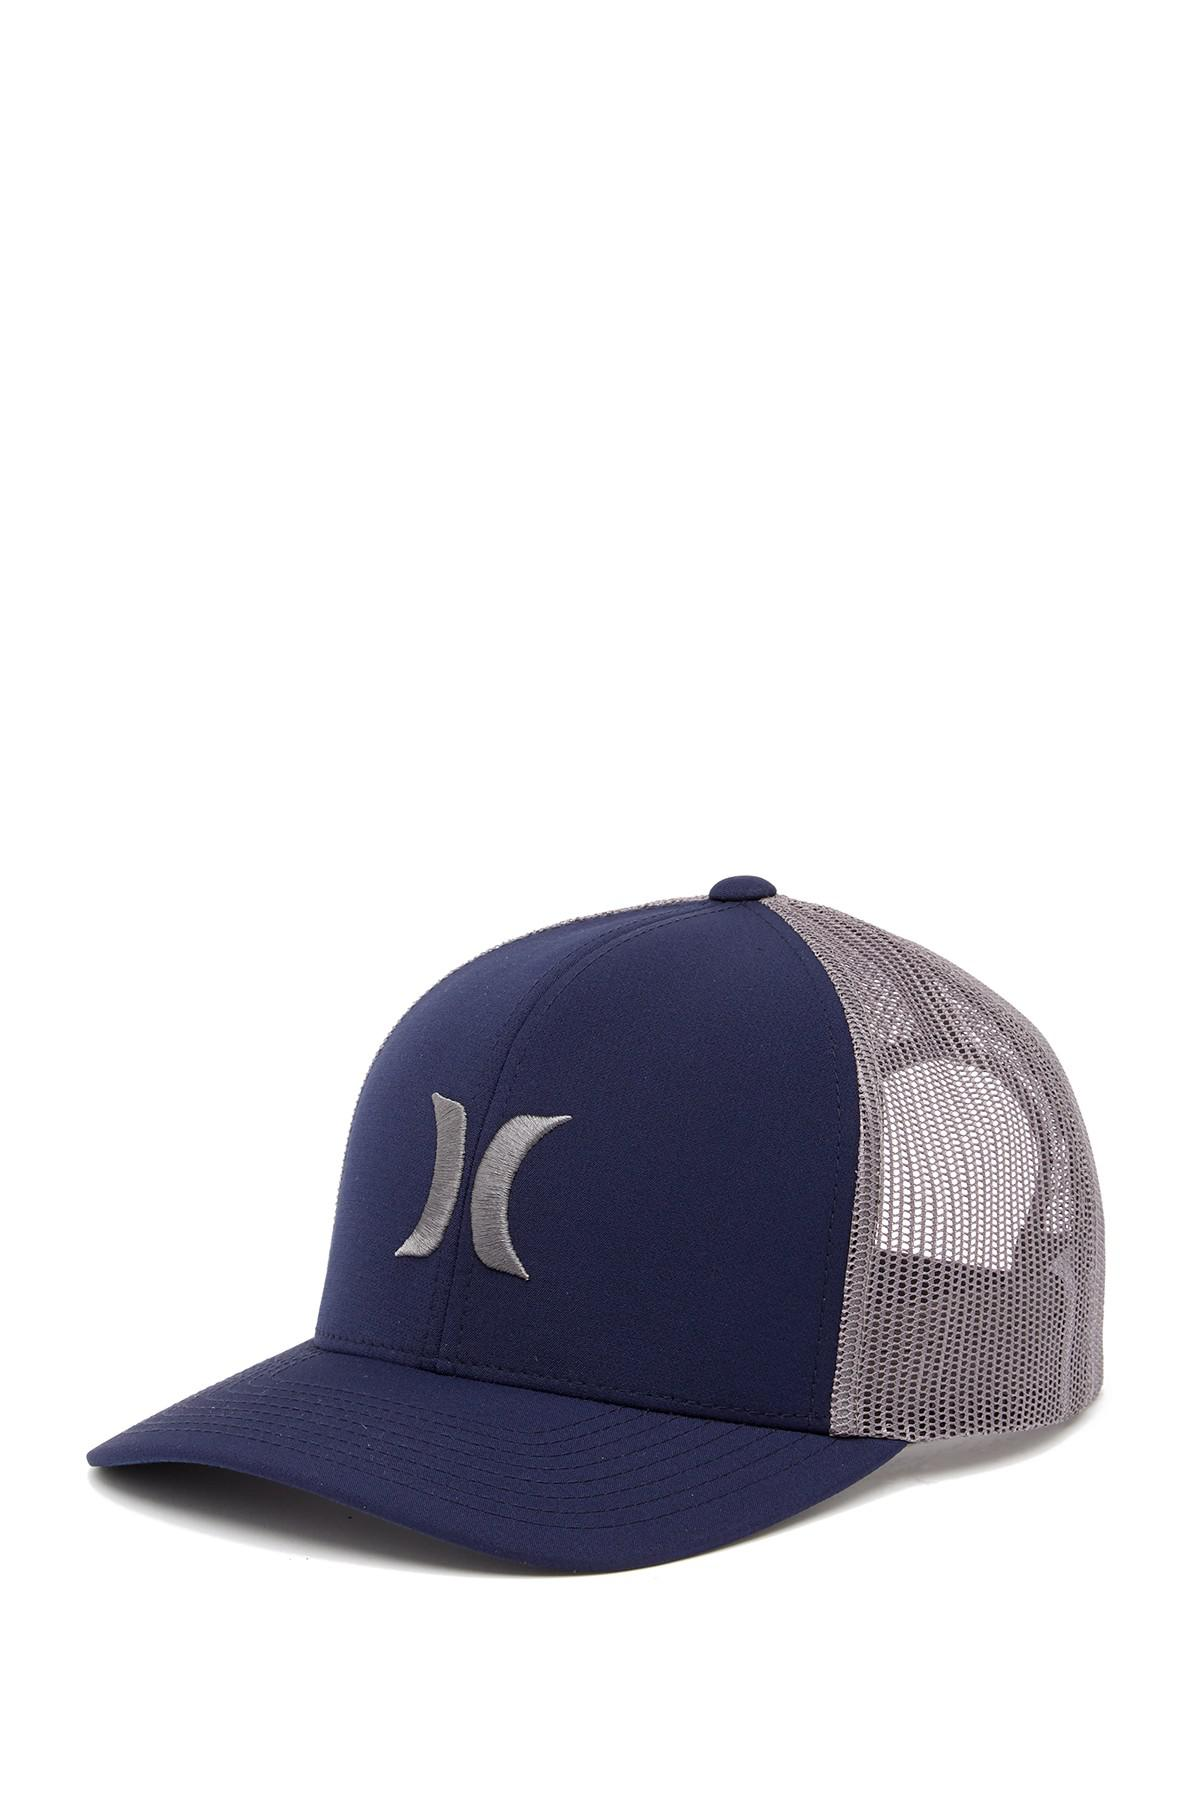 competitive price 7b13d 91f38 discount lyst hurley del mar trucker hat for men f7e2f 7ffbb